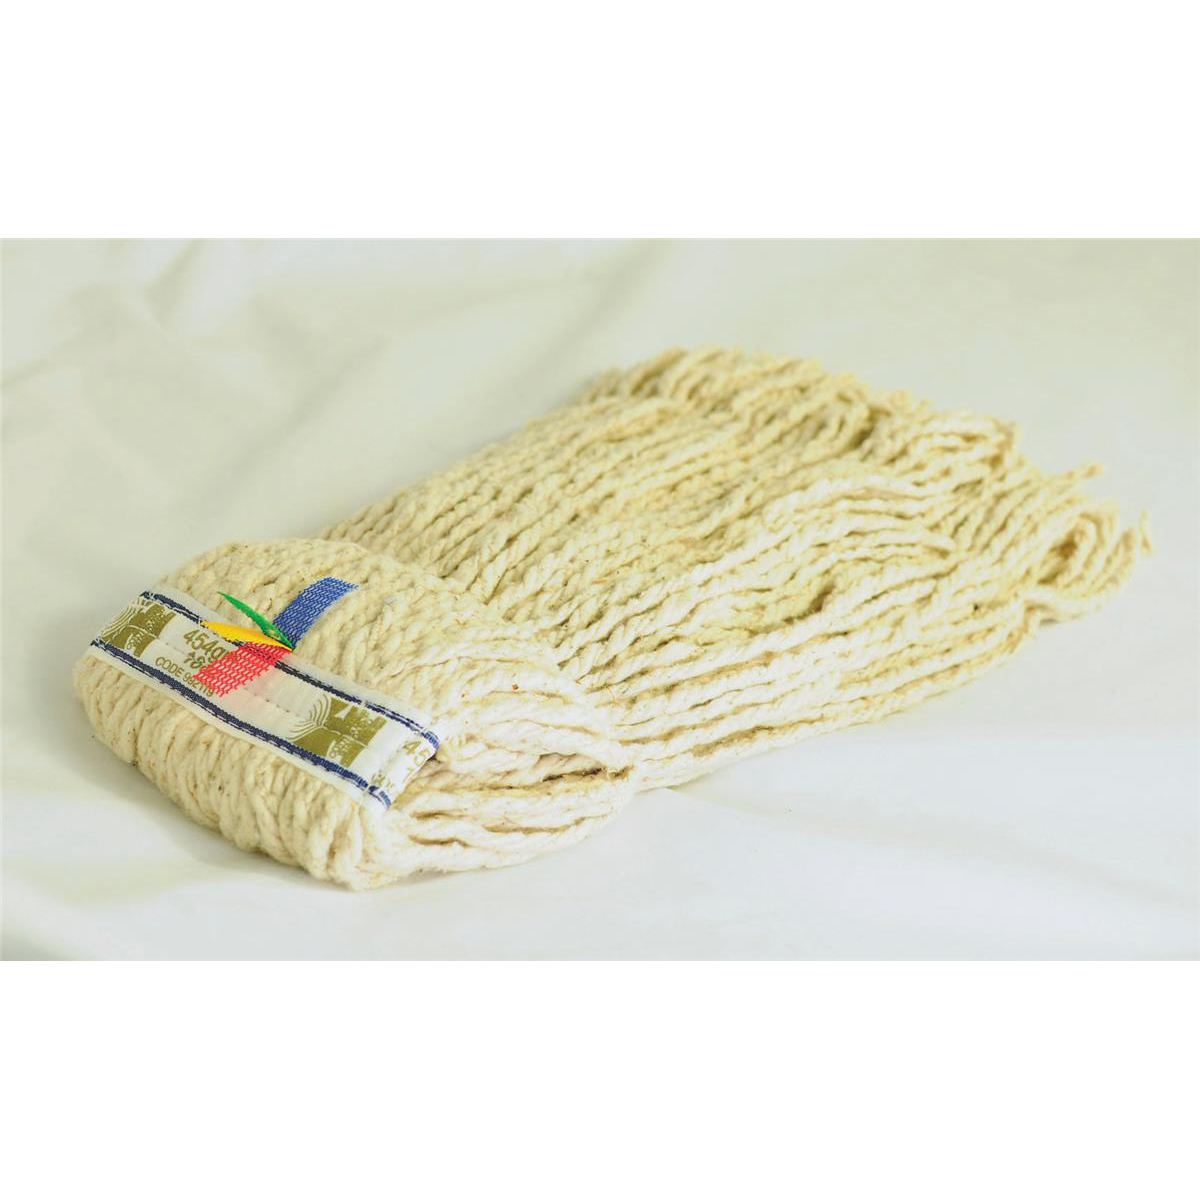 Mop heads Kentucky Mop Head Multifold Hyienic with Assorted Removeable Tabs 16oz/450g